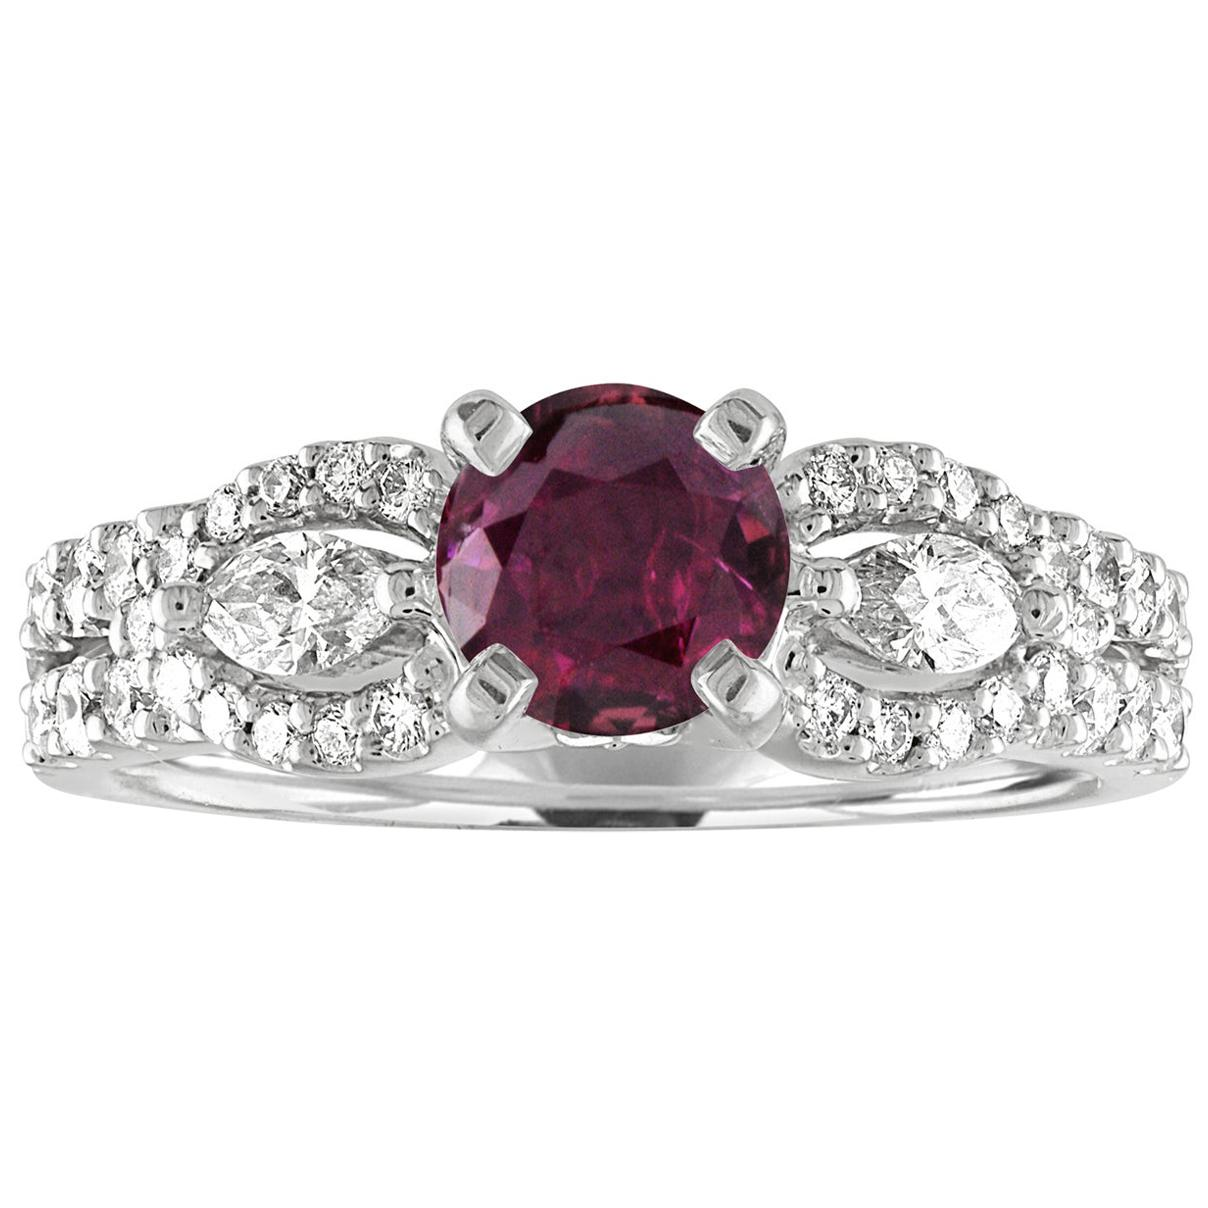 AGL Certified 1.02 Carat Round Ruby Diamond Gold Ring